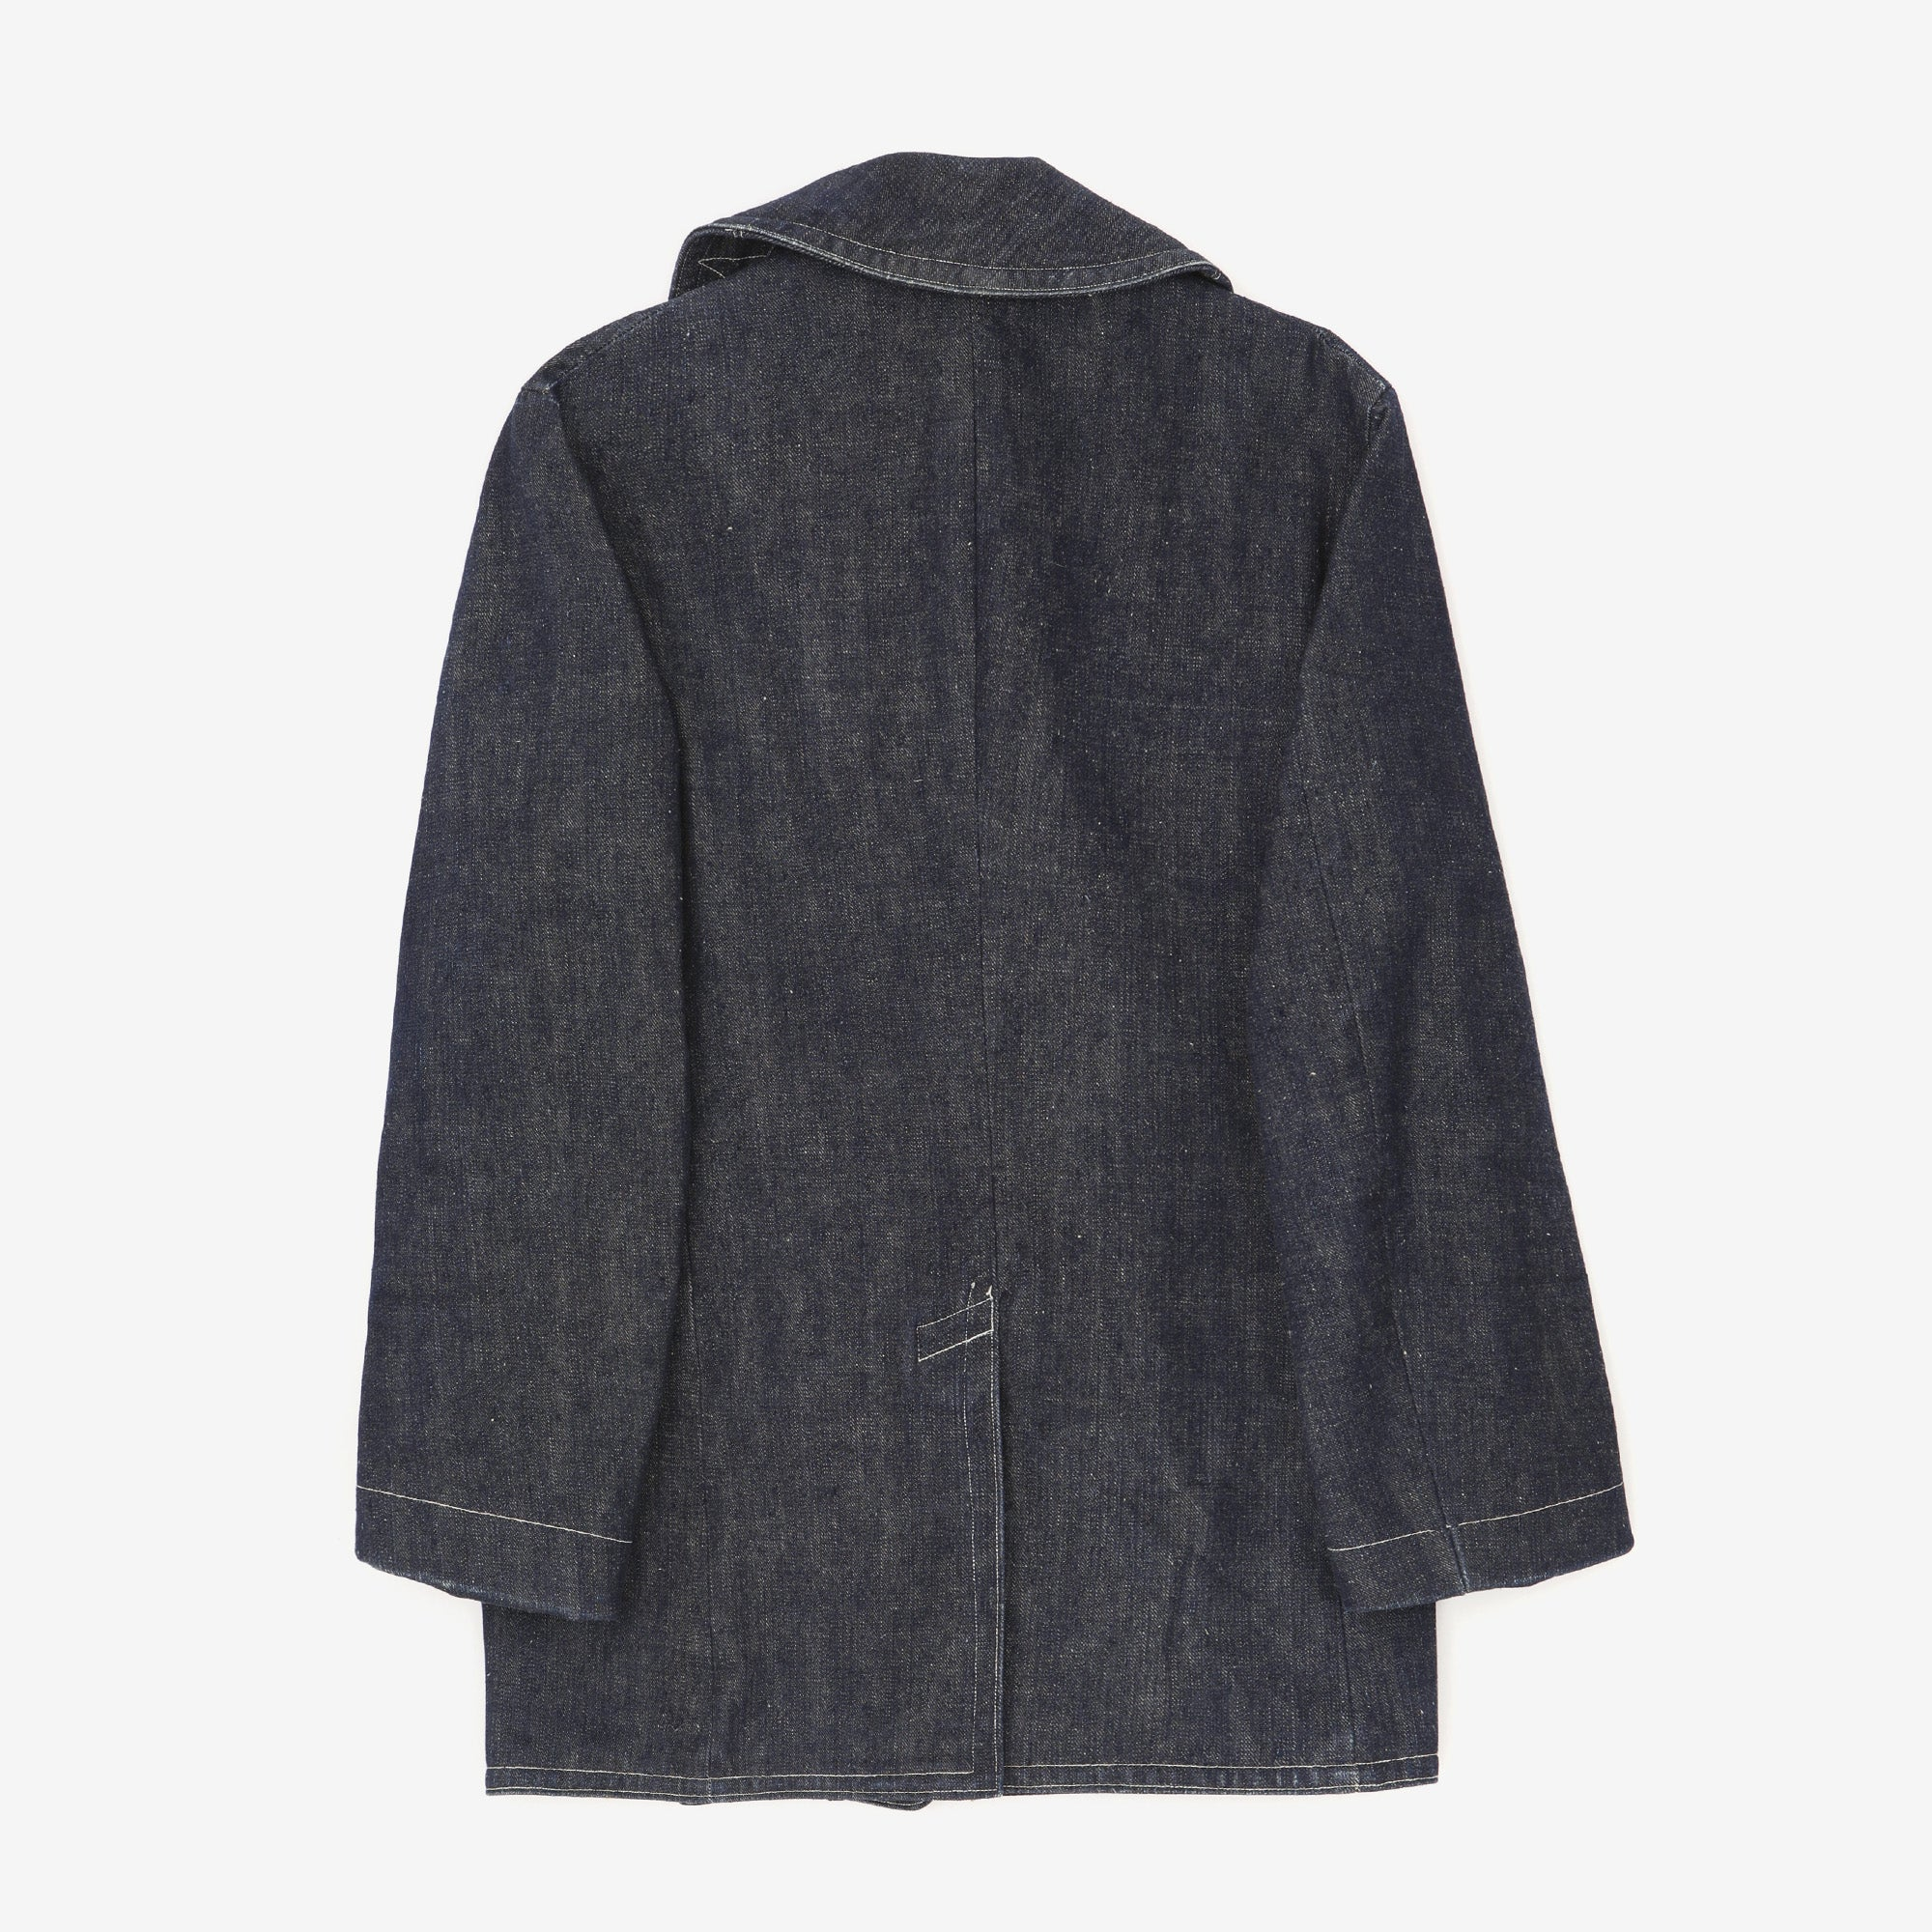 U.S Navy Denim Pea Coat